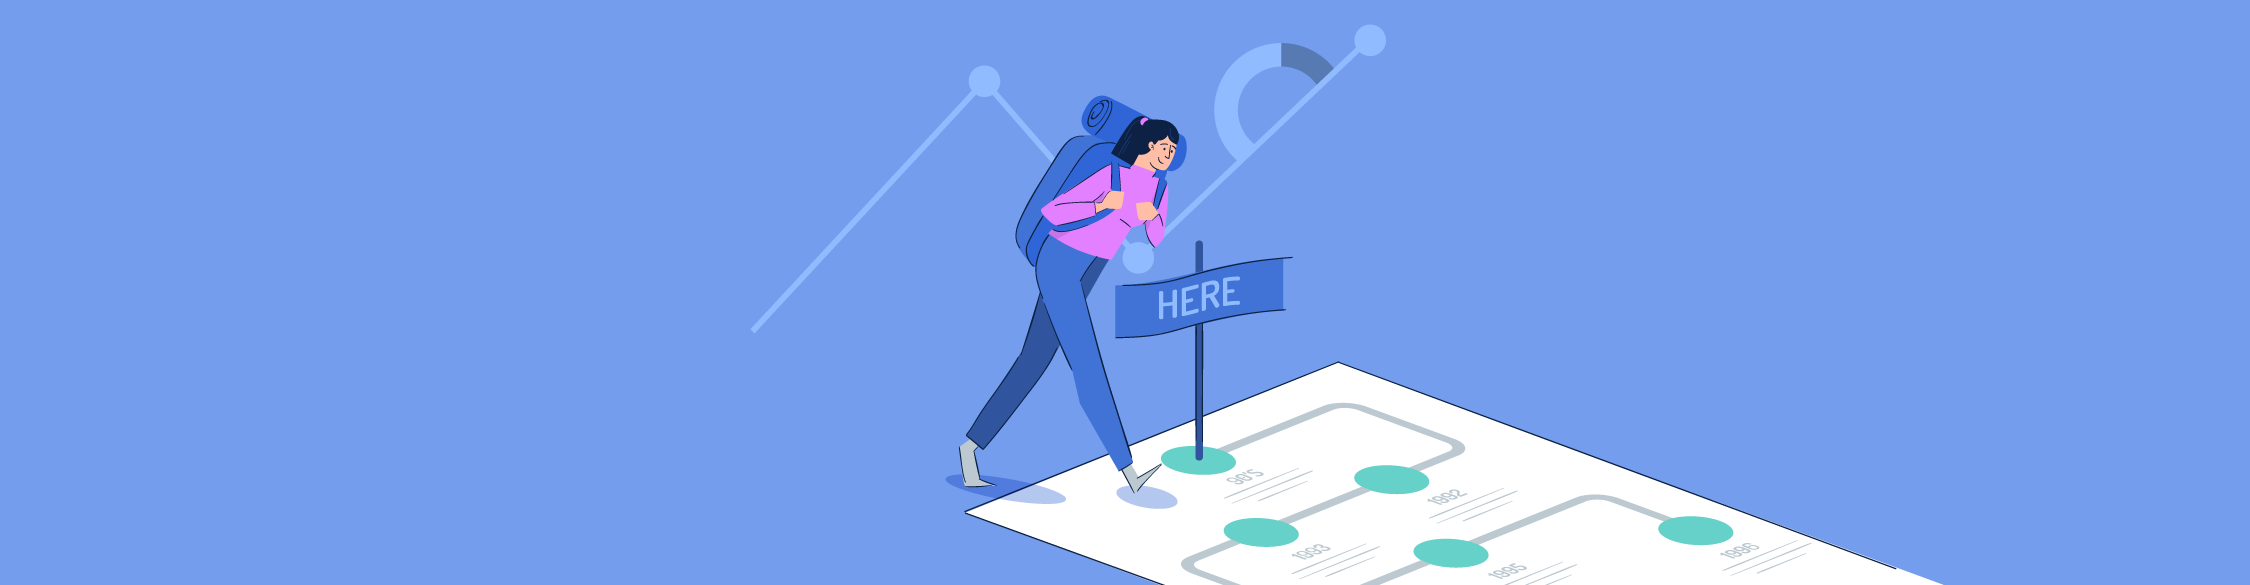 Wide illustration of a girl navigating her way through an infographic layout.